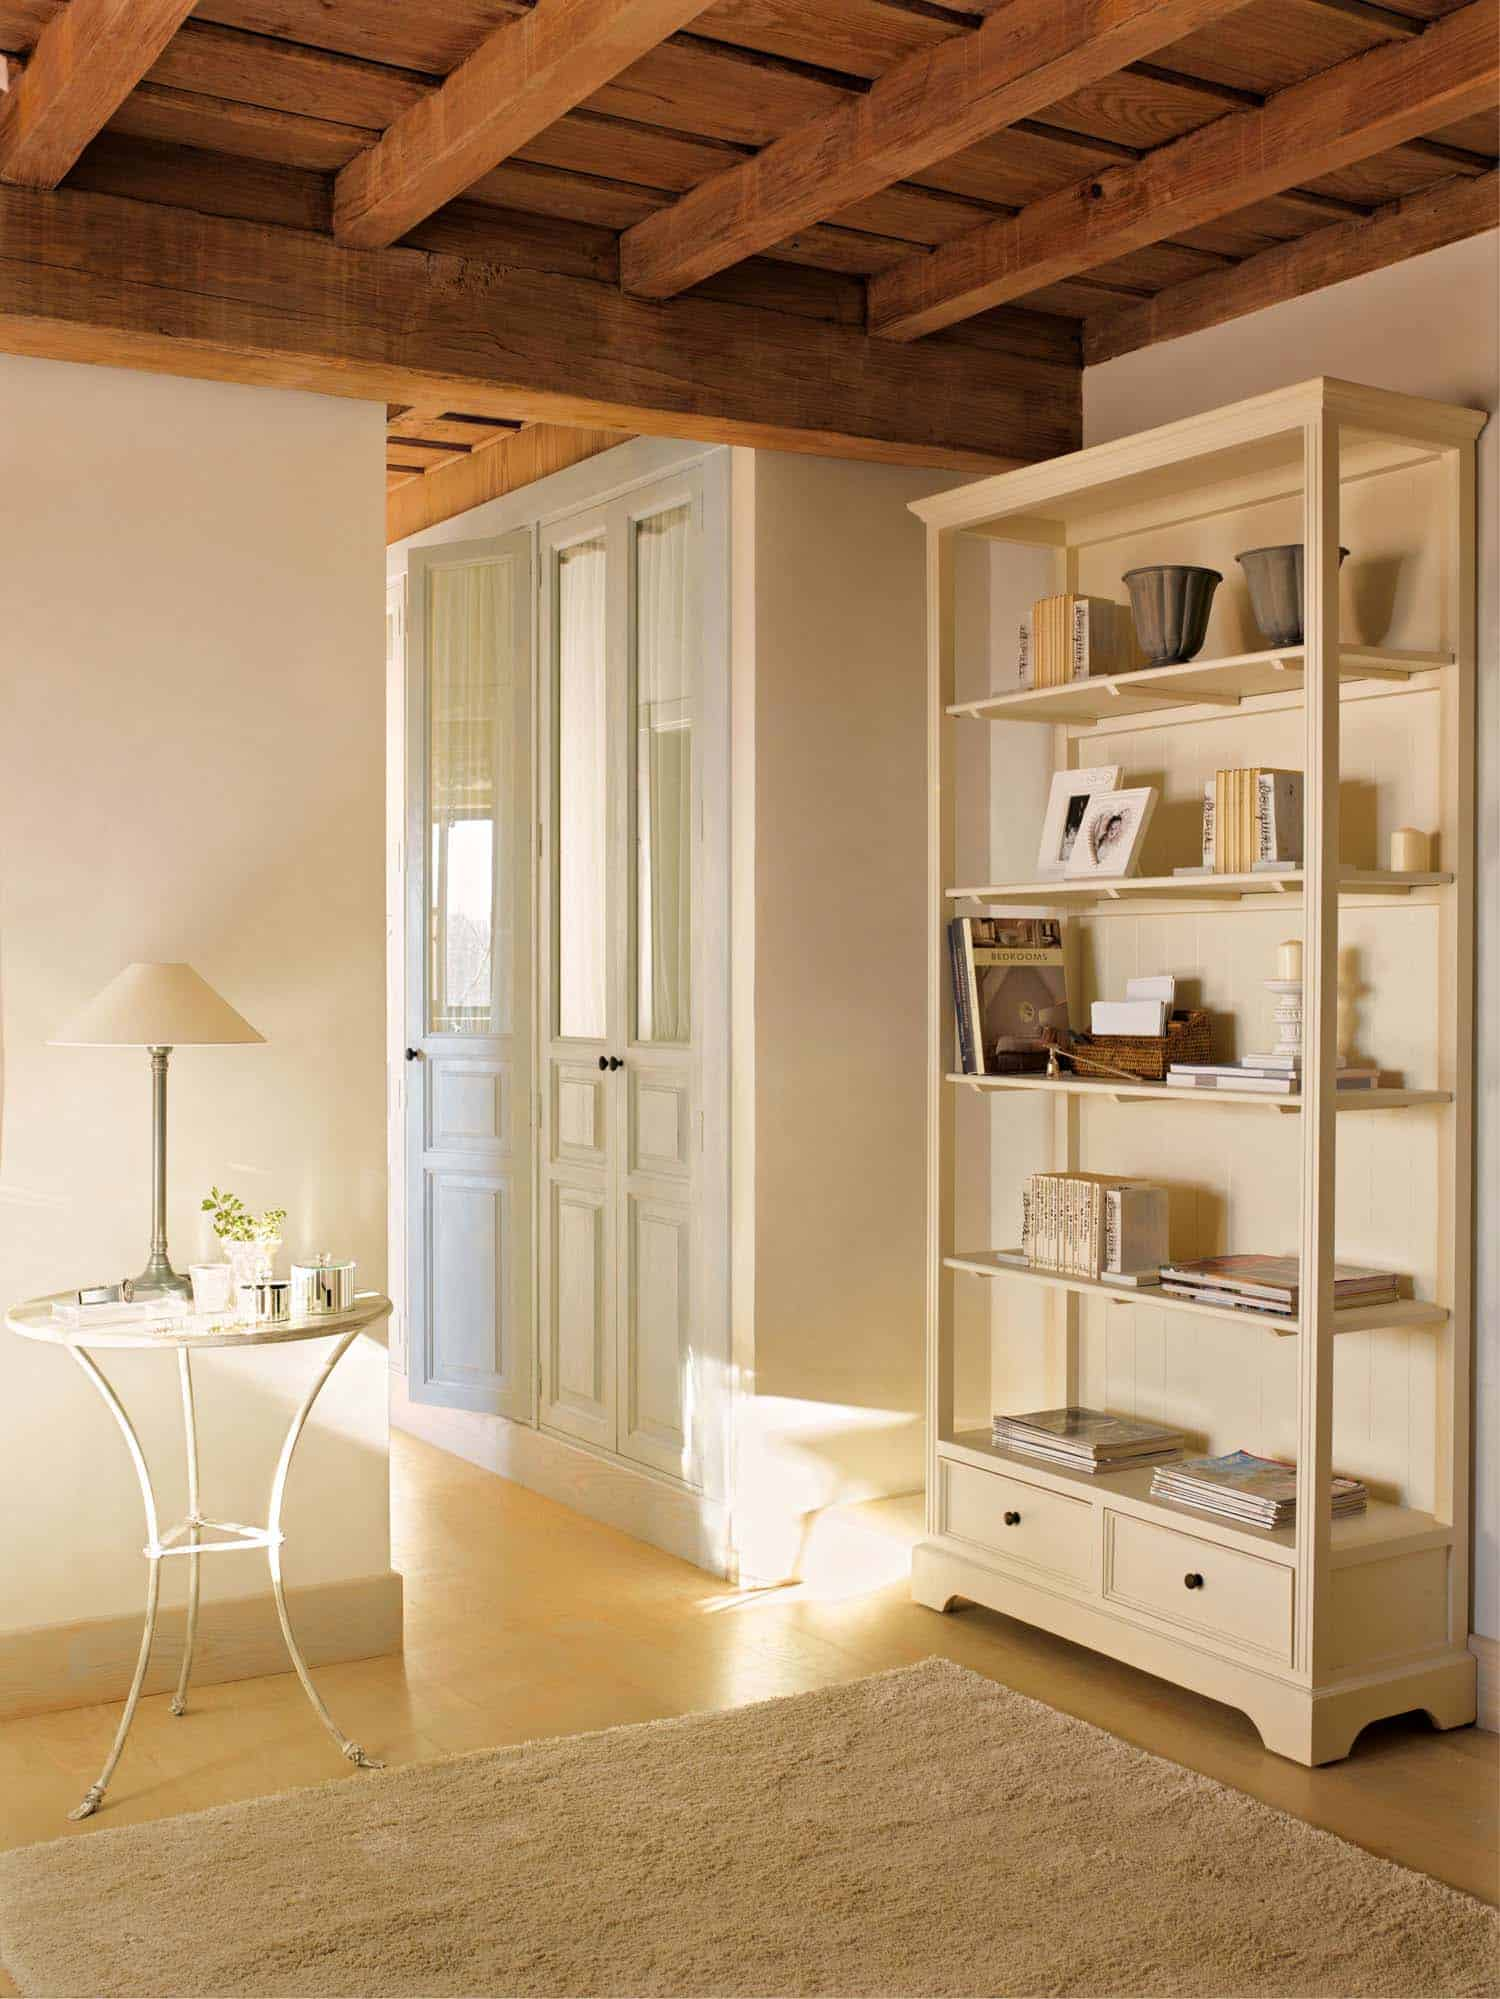 Captivating Rustic Home In The Spanish Countryside With Modern Charm # Muebles Lifetime Espana